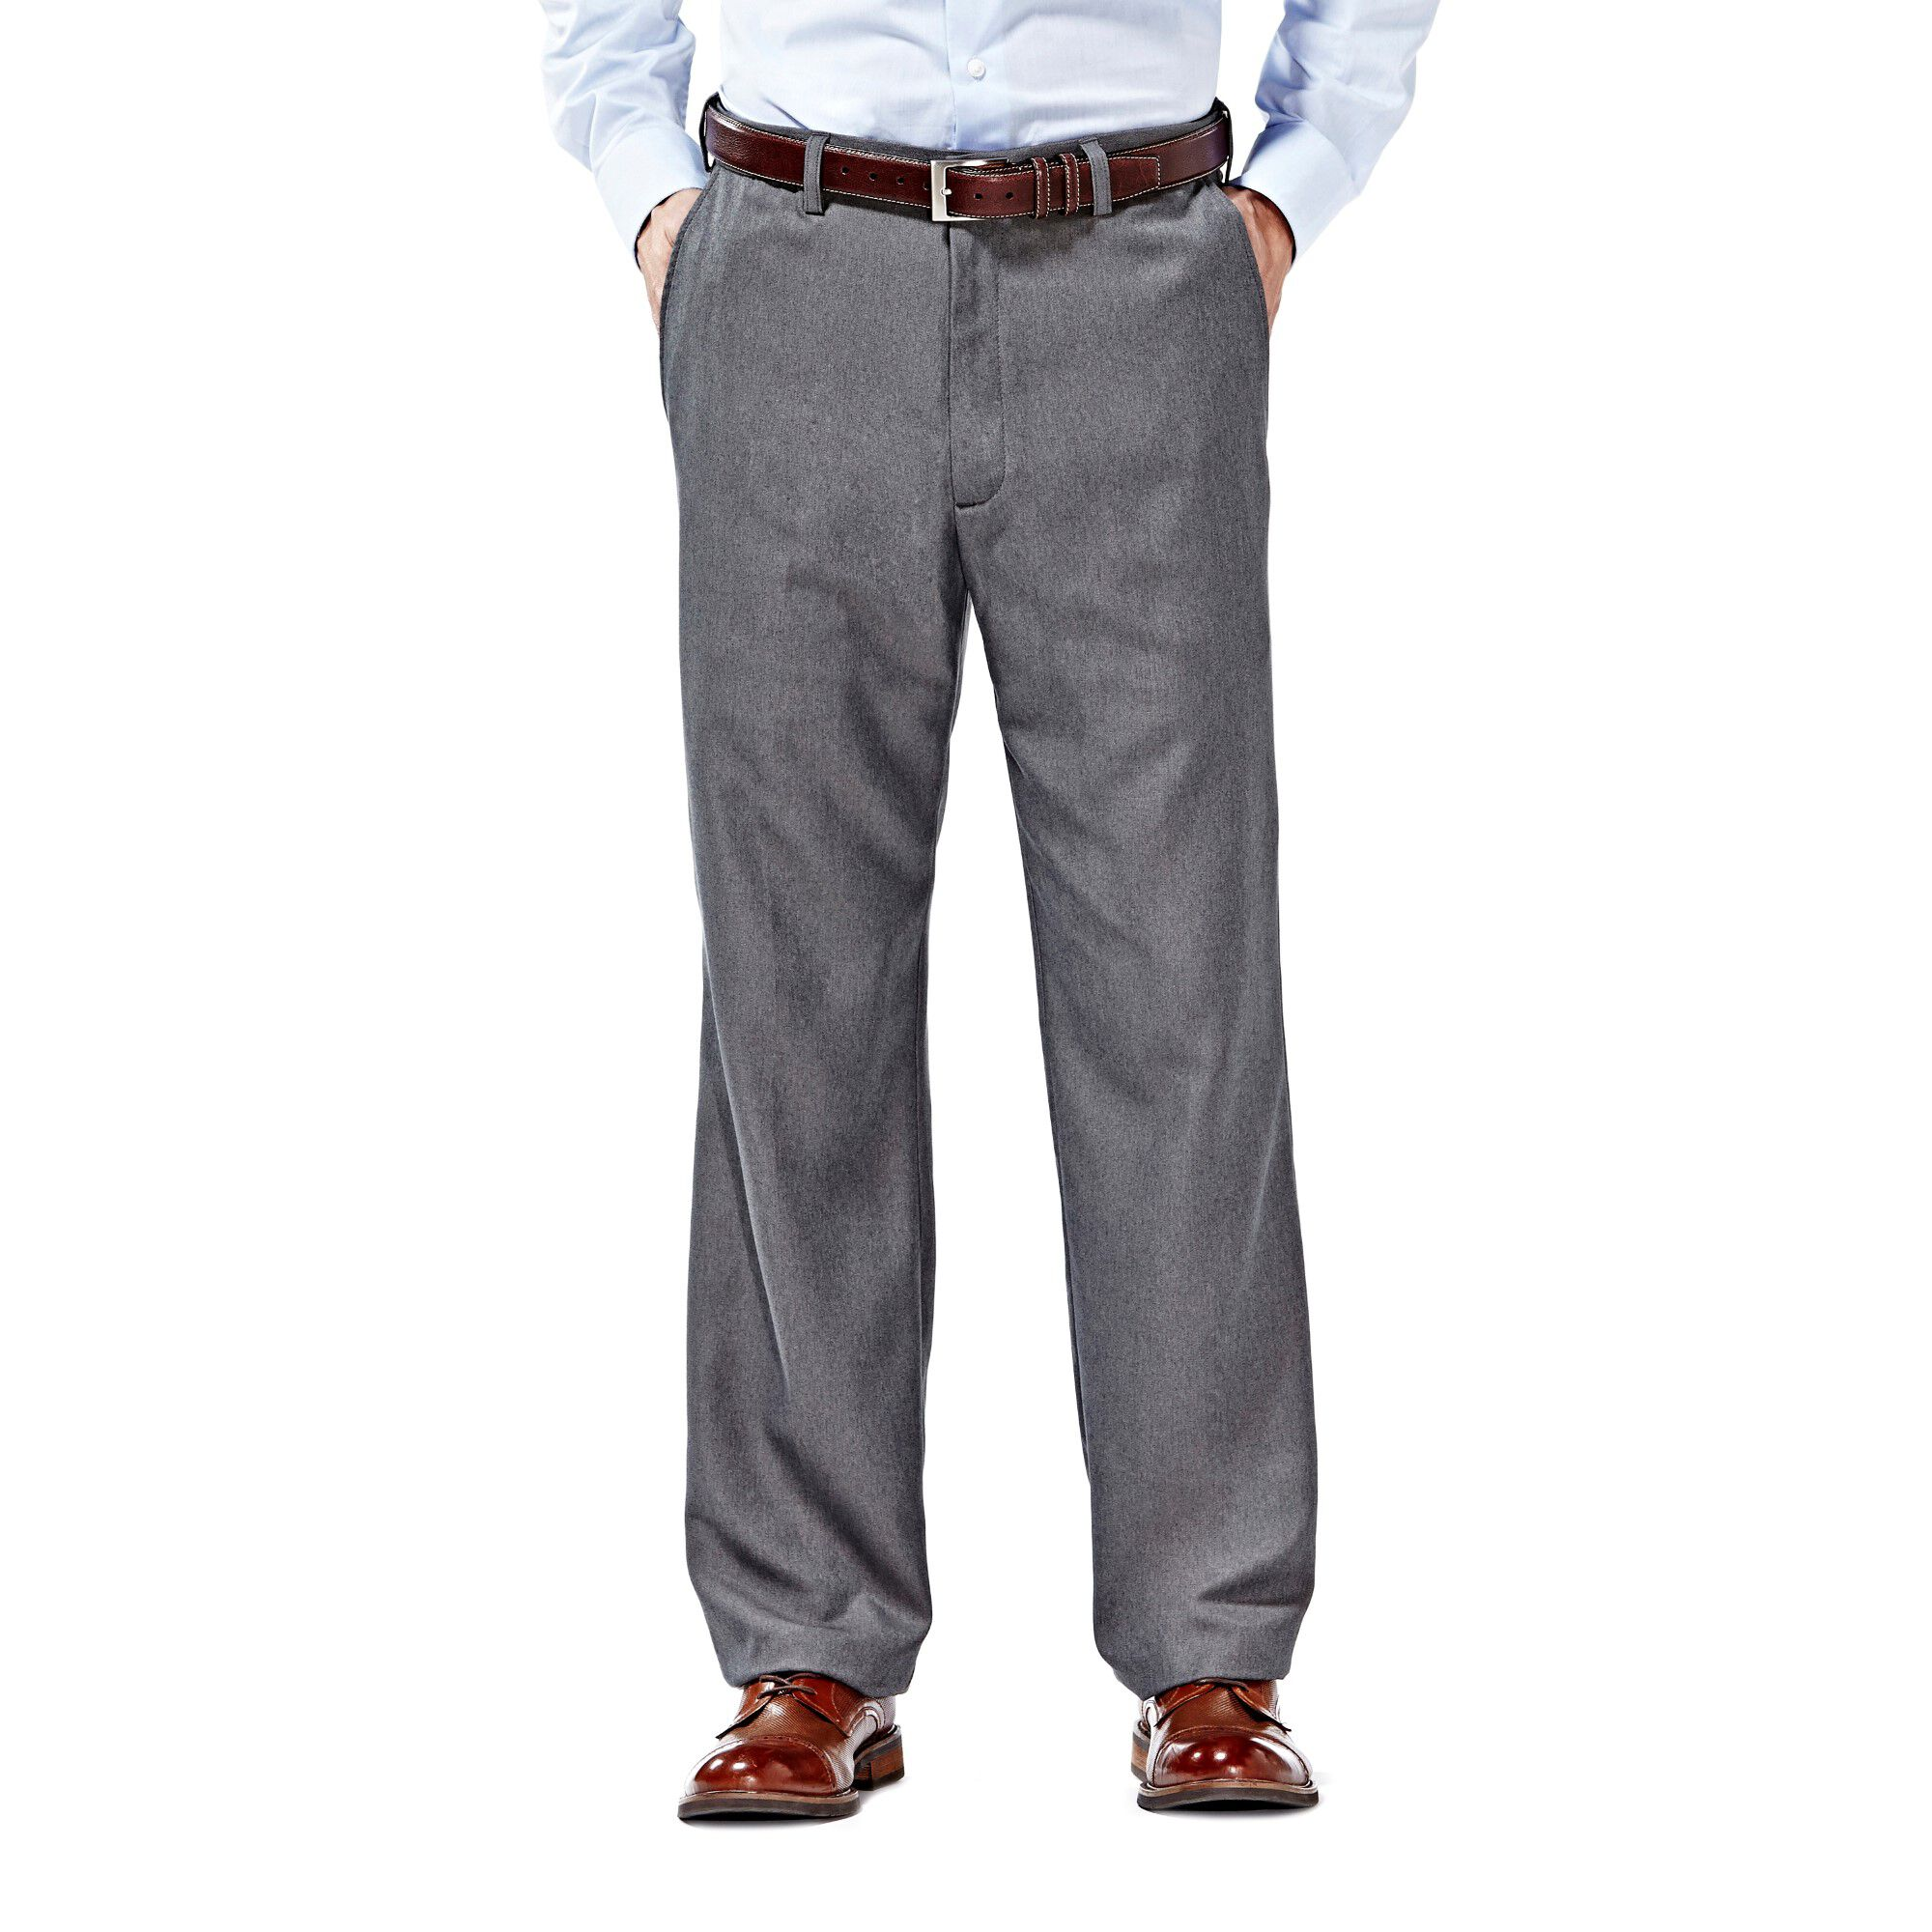 Looking to purchase Haggar slacks for women.?